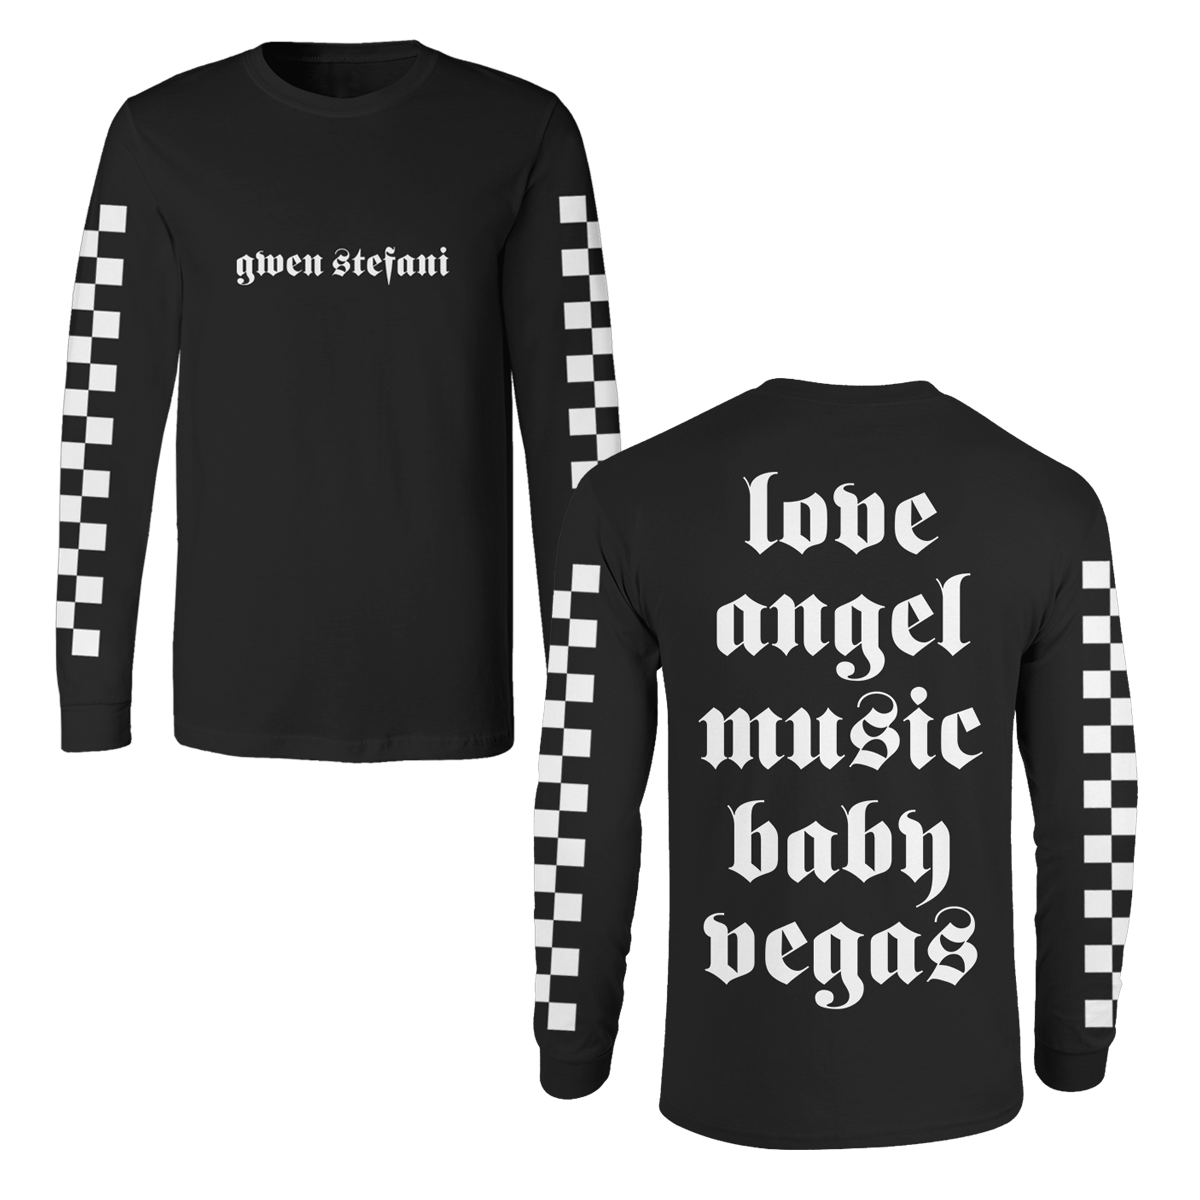 Love Angel Black Long Sleeve Tee - Gwen Stefani